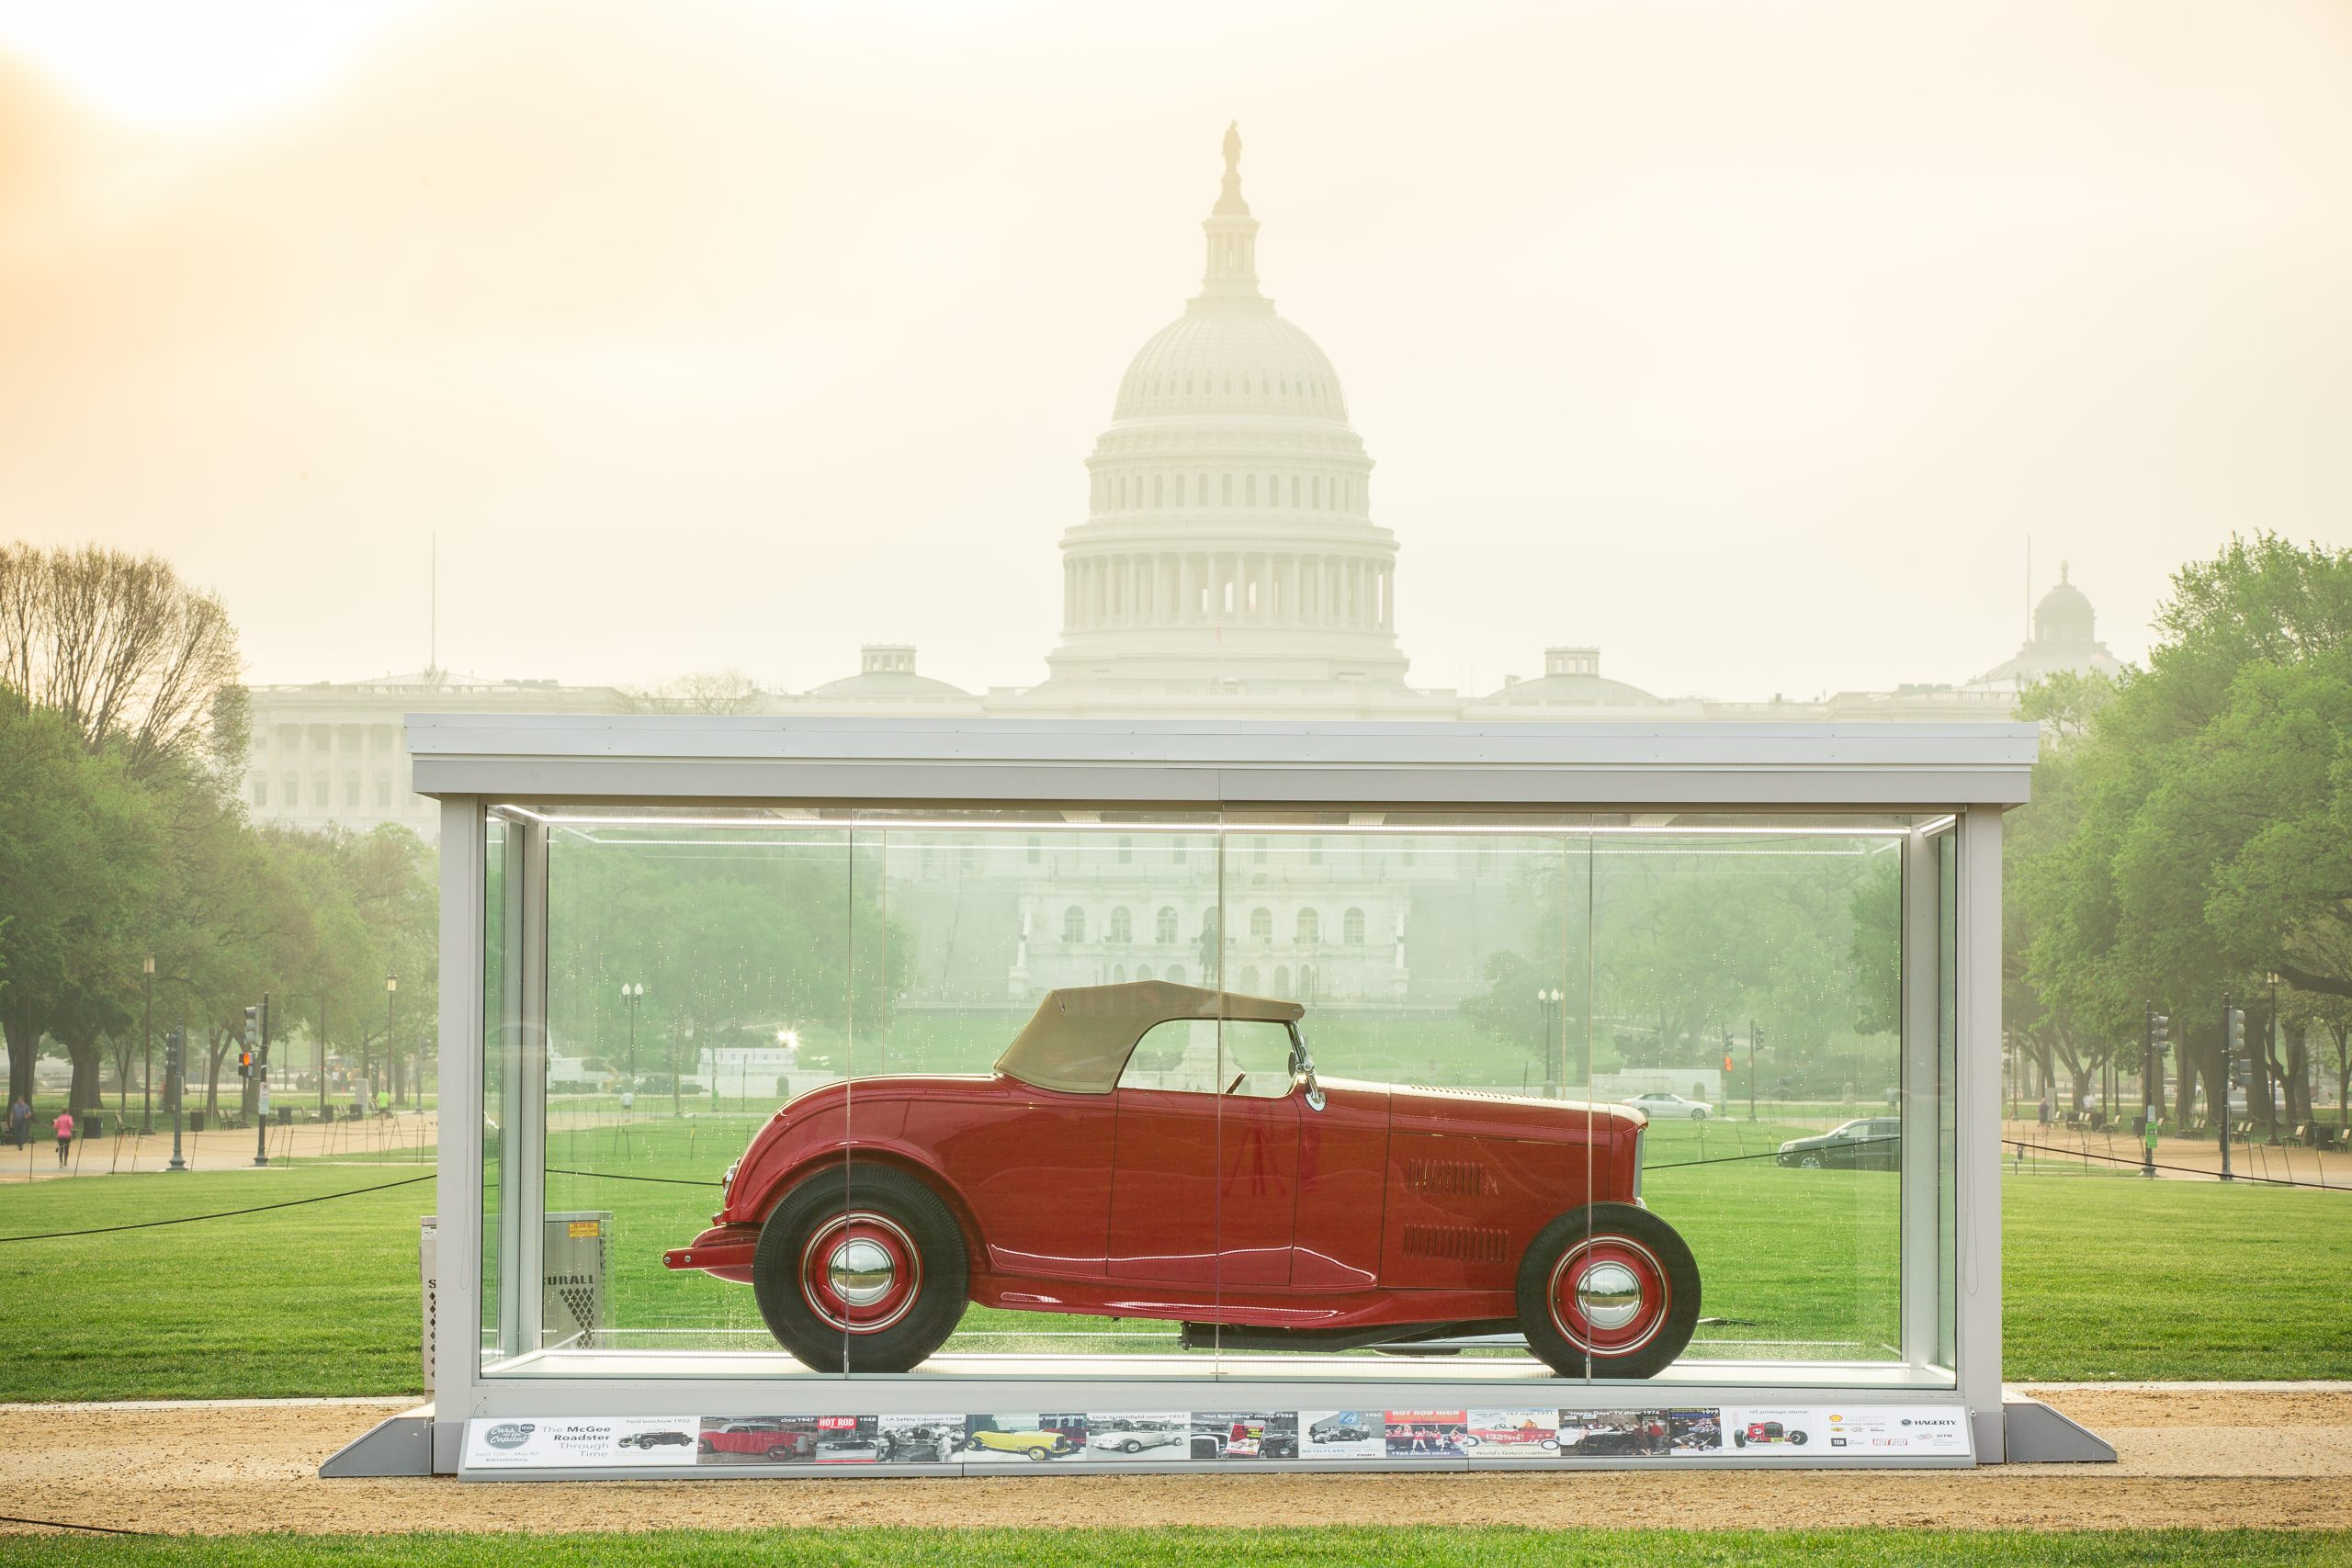 McGee Roadster - 1932 Ford - HVA Cars at the Capital 9